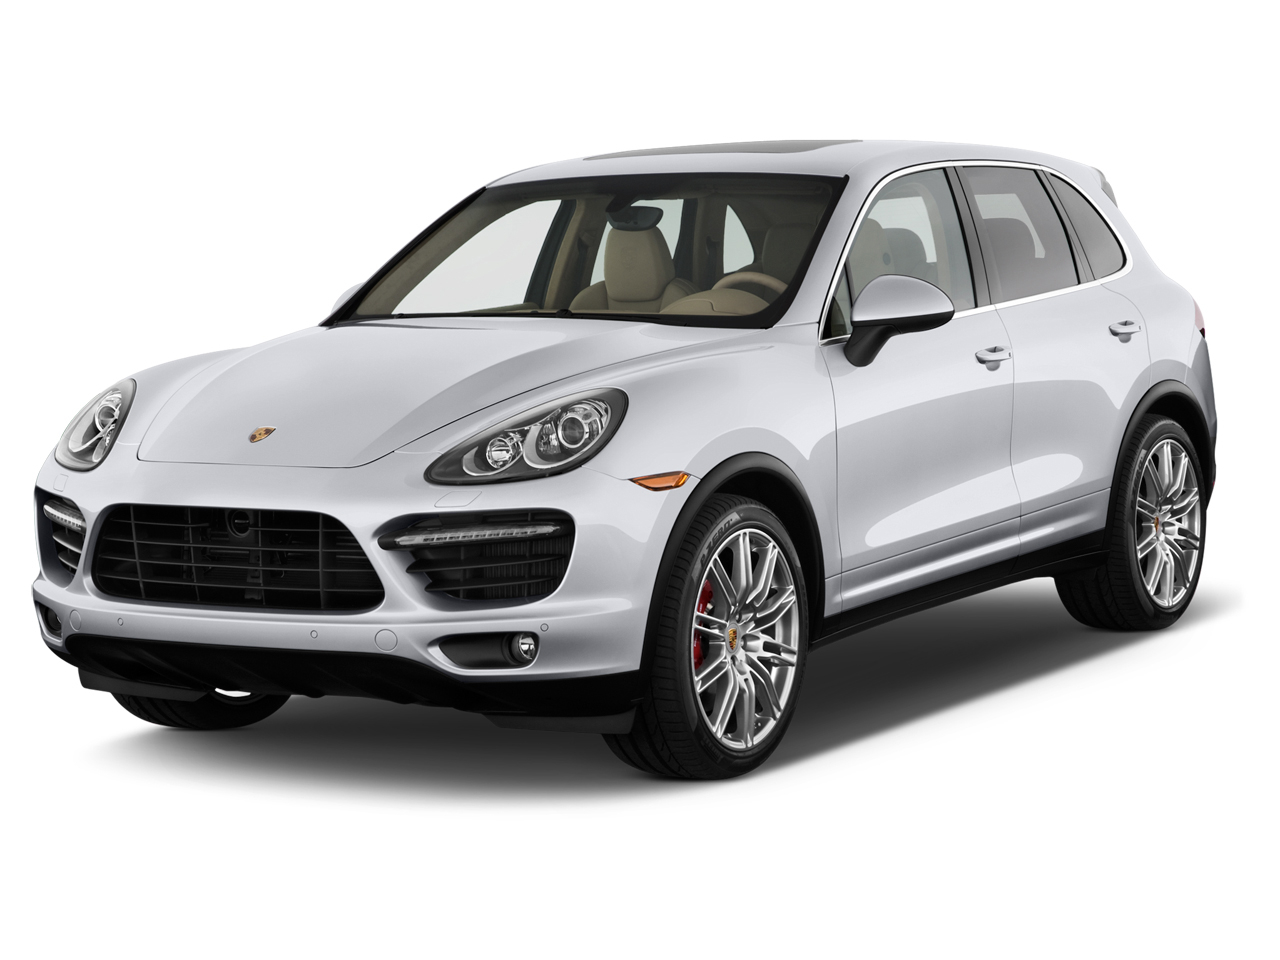 2011 12 porsche cayenne recalled for faulty headlights. Black Bedroom Furniture Sets. Home Design Ideas